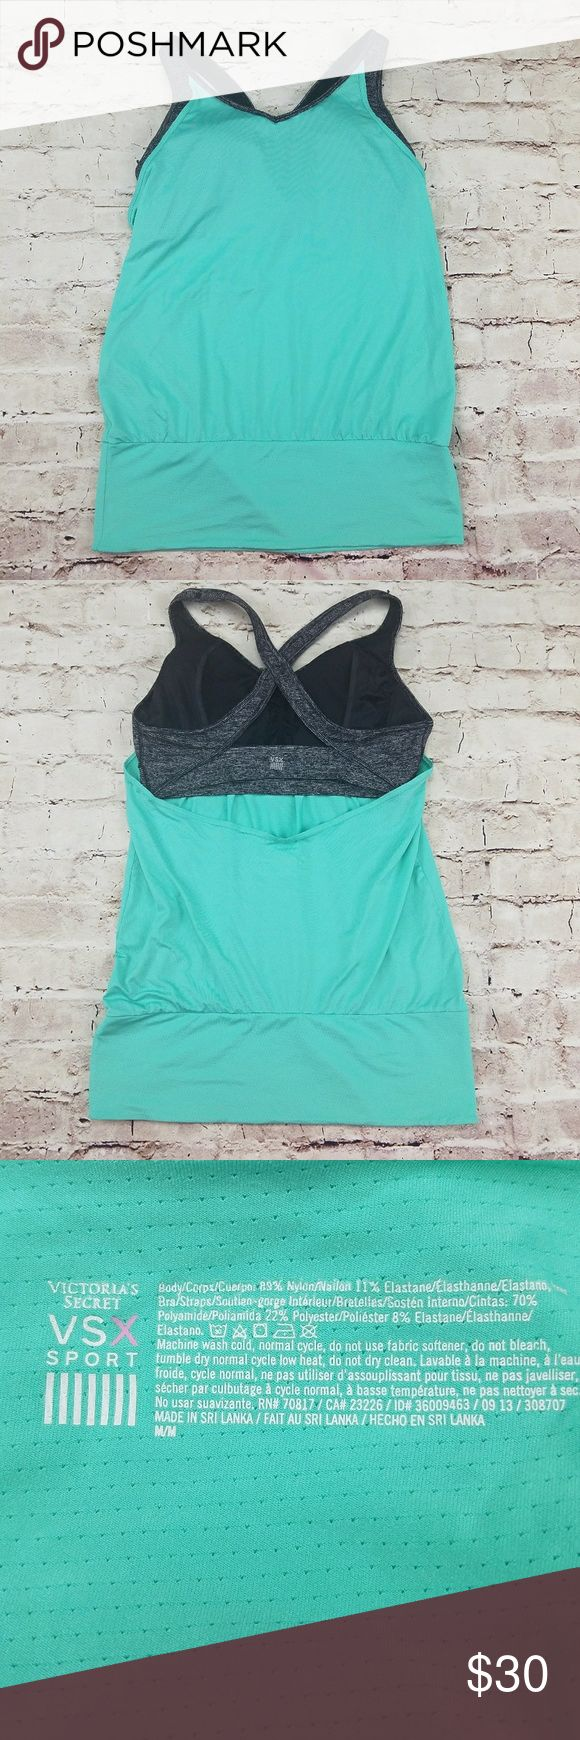 Victoria's Secret Teal Workout Tank Built in Bra M VSX by Victoria Secret Sport Teal Workout Tank with Striped Gray Sports Bra - Open Back - Sz M  Teal Mesh Workout Tank Top with Gray (Black & White) Striped Criss-Cross Sports Bra  Racerback Sports Bra with Removable Pads Padded Sports Bra V Neck Teal / Mint Green Activewear Top - Wide Waist Band with Built in Bra Top  Style Number - 36009464 / 09 13 / 308707  Great for yoga, cross-fit, working out, active wear and athleisure. Victoria's…